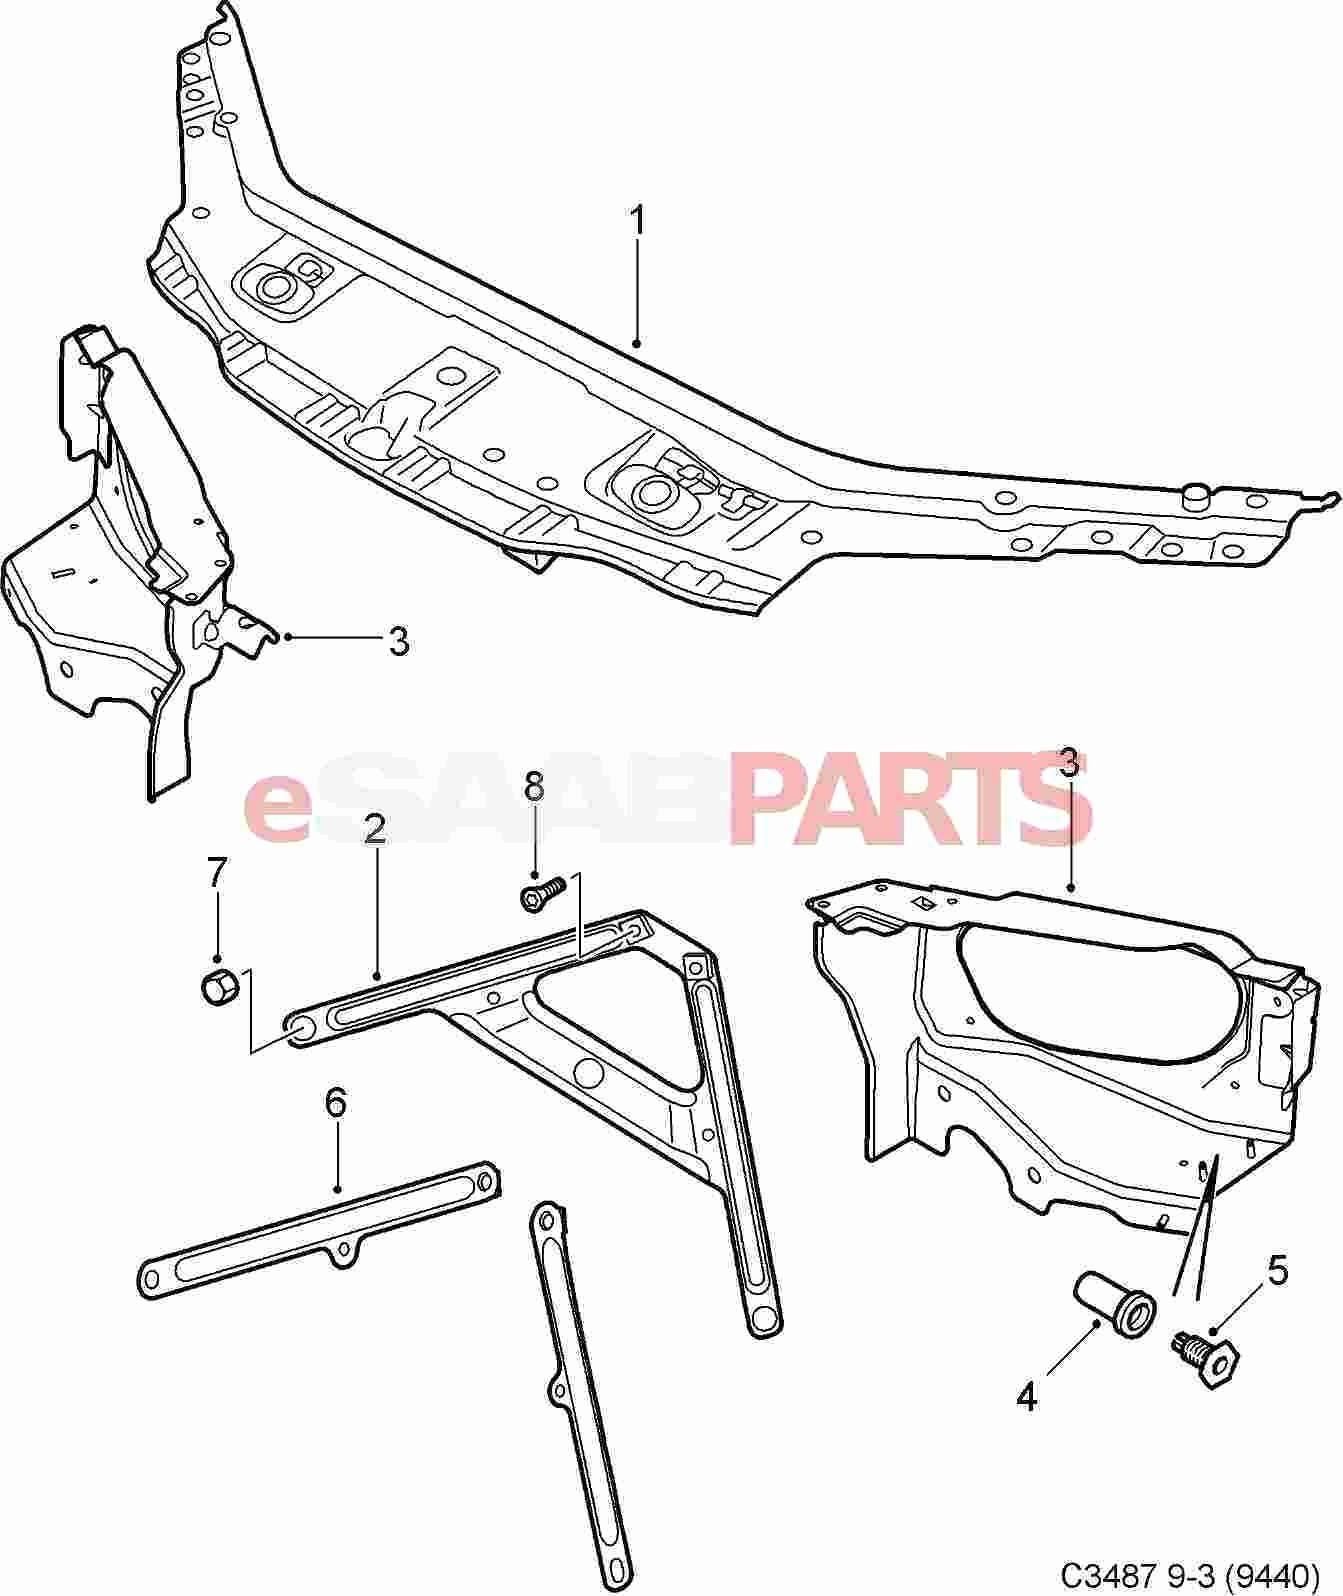 car undercarriage parts diagram exterior car parts diagram car rh detoxicrecenze com Car Axle Diagram Car Axle Diagram